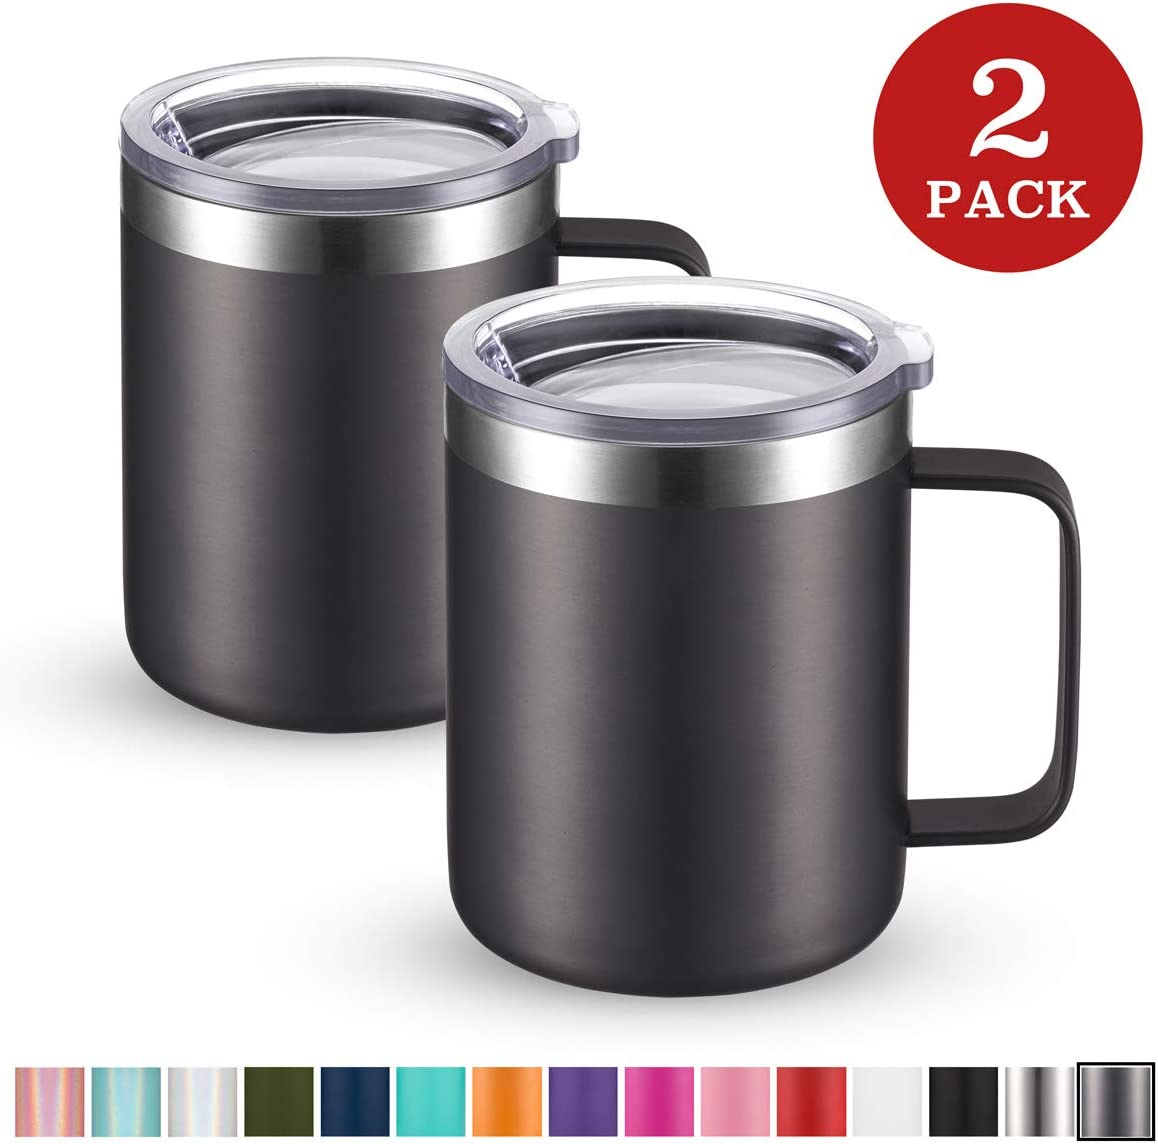 Civago Stainless Steel Coffee Mug Cup with Handle, 12 oz Double Wall Vacuum Insulated Tumbler with Lid Travel Friendly (Gray, 2 Pack)